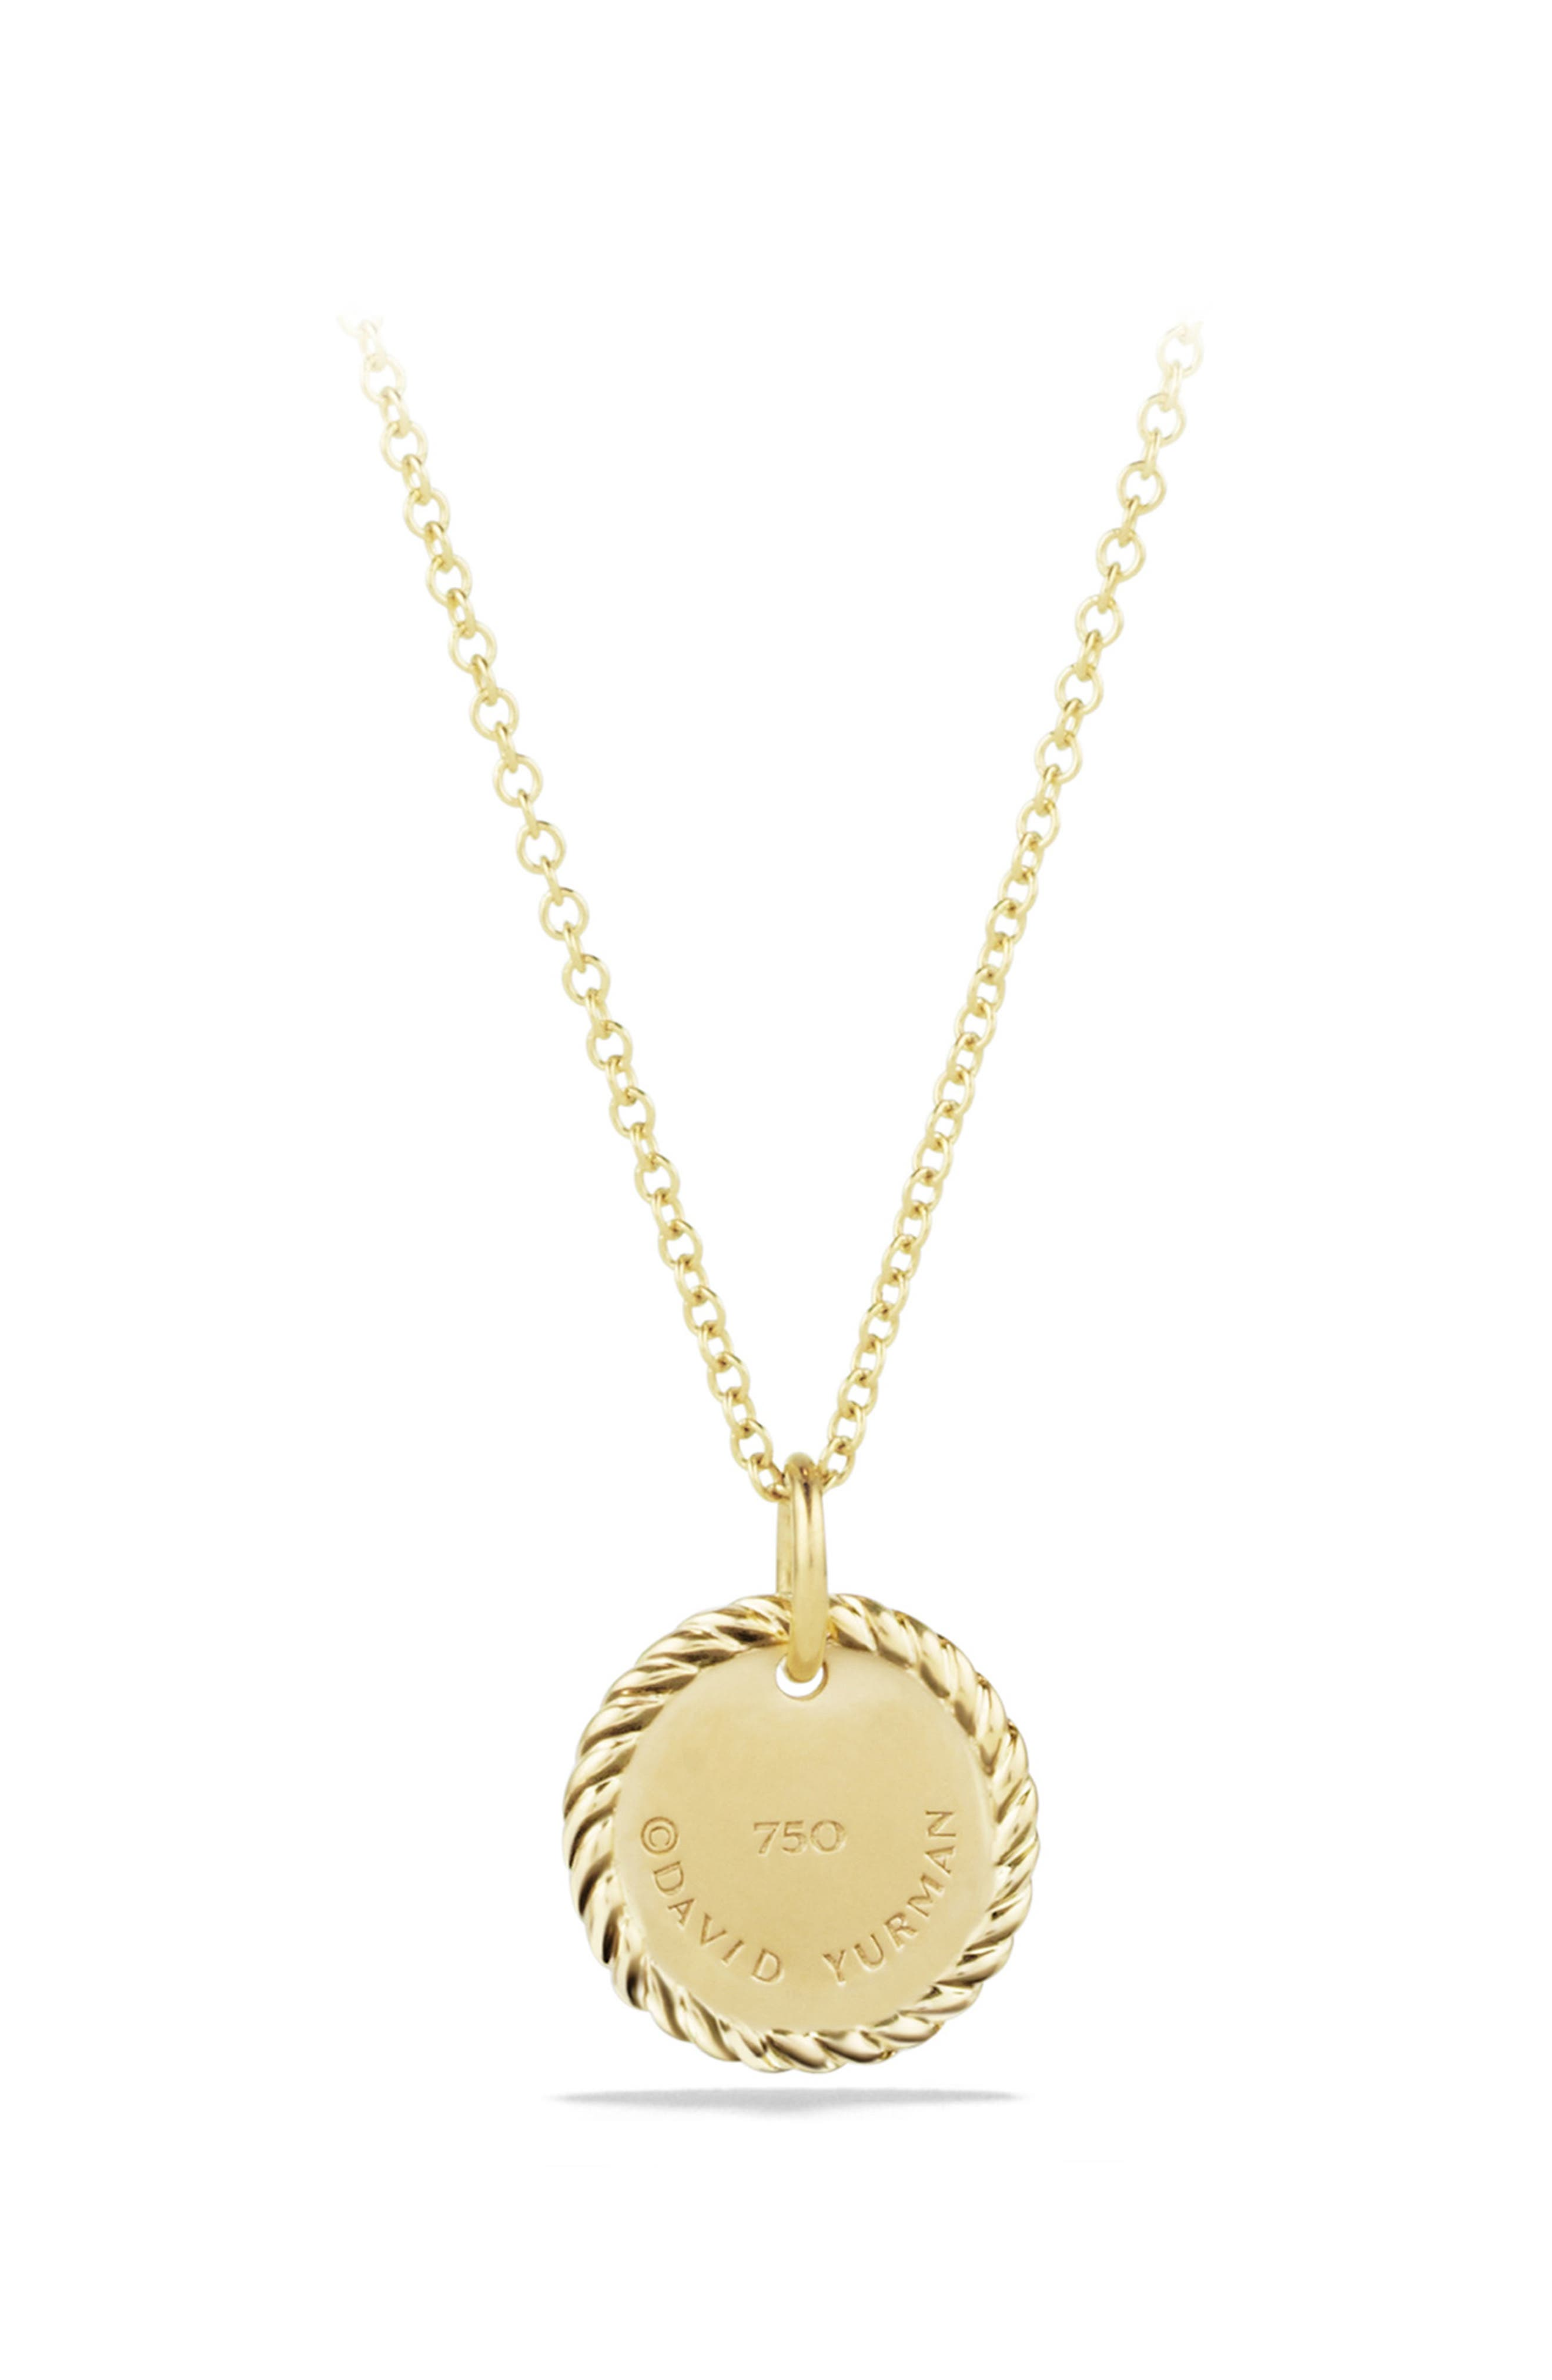 'Cable Collectibles' Star of David Charm Necklace with Diamonds in Gold,                             Alternate thumbnail 3, color,                             DIAMOND